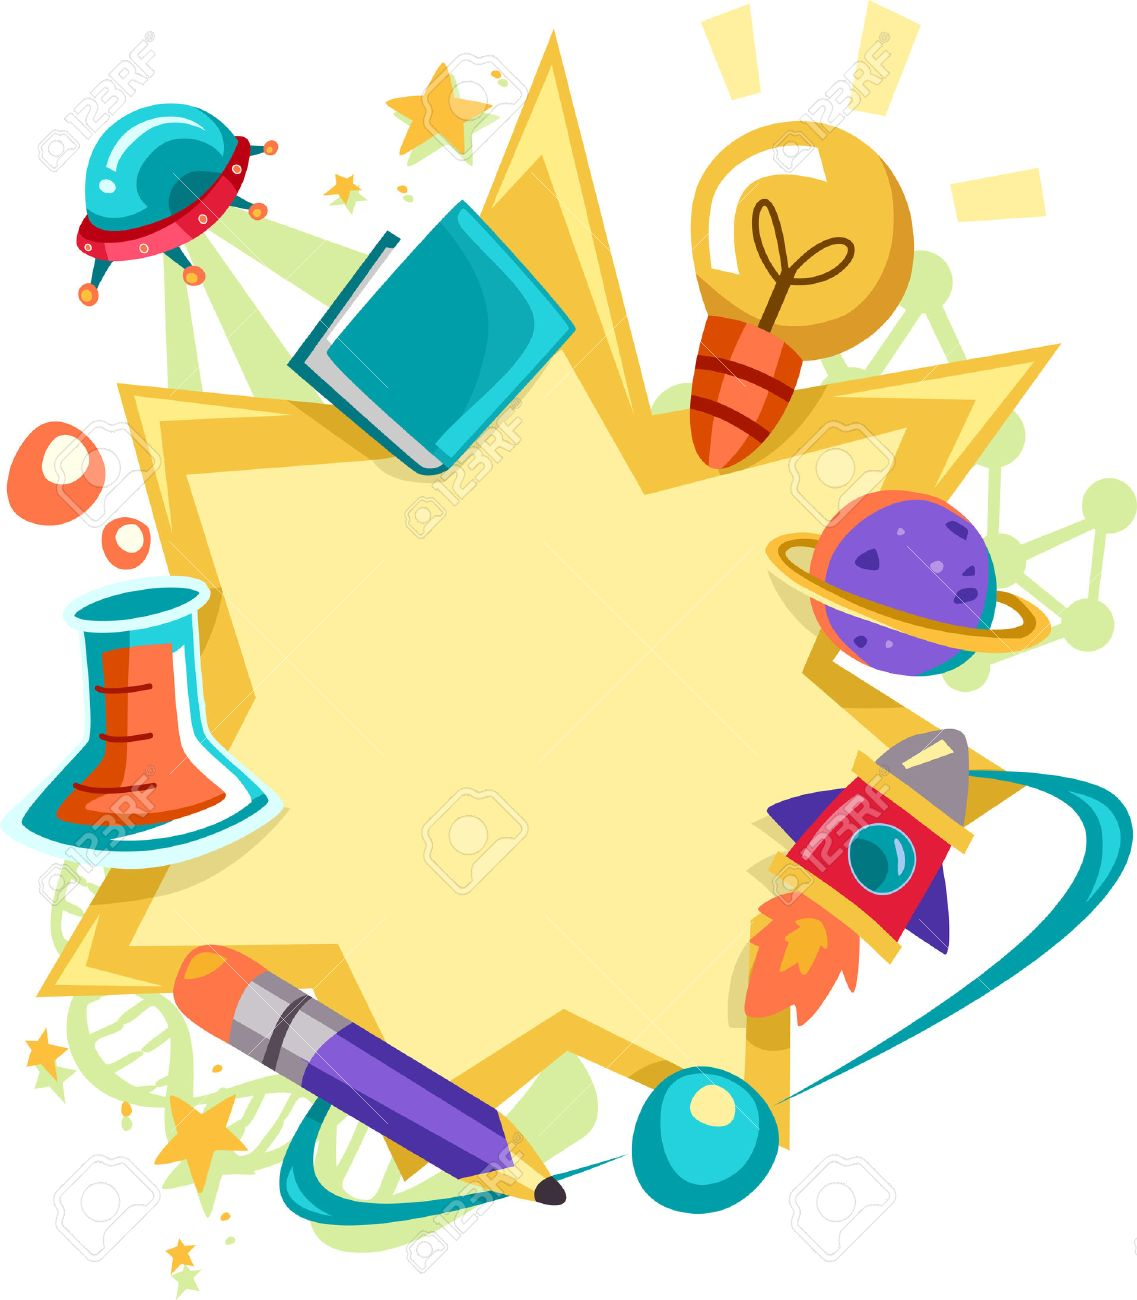 Frame Illustration Featuring Science Related Items Stock Photo ...